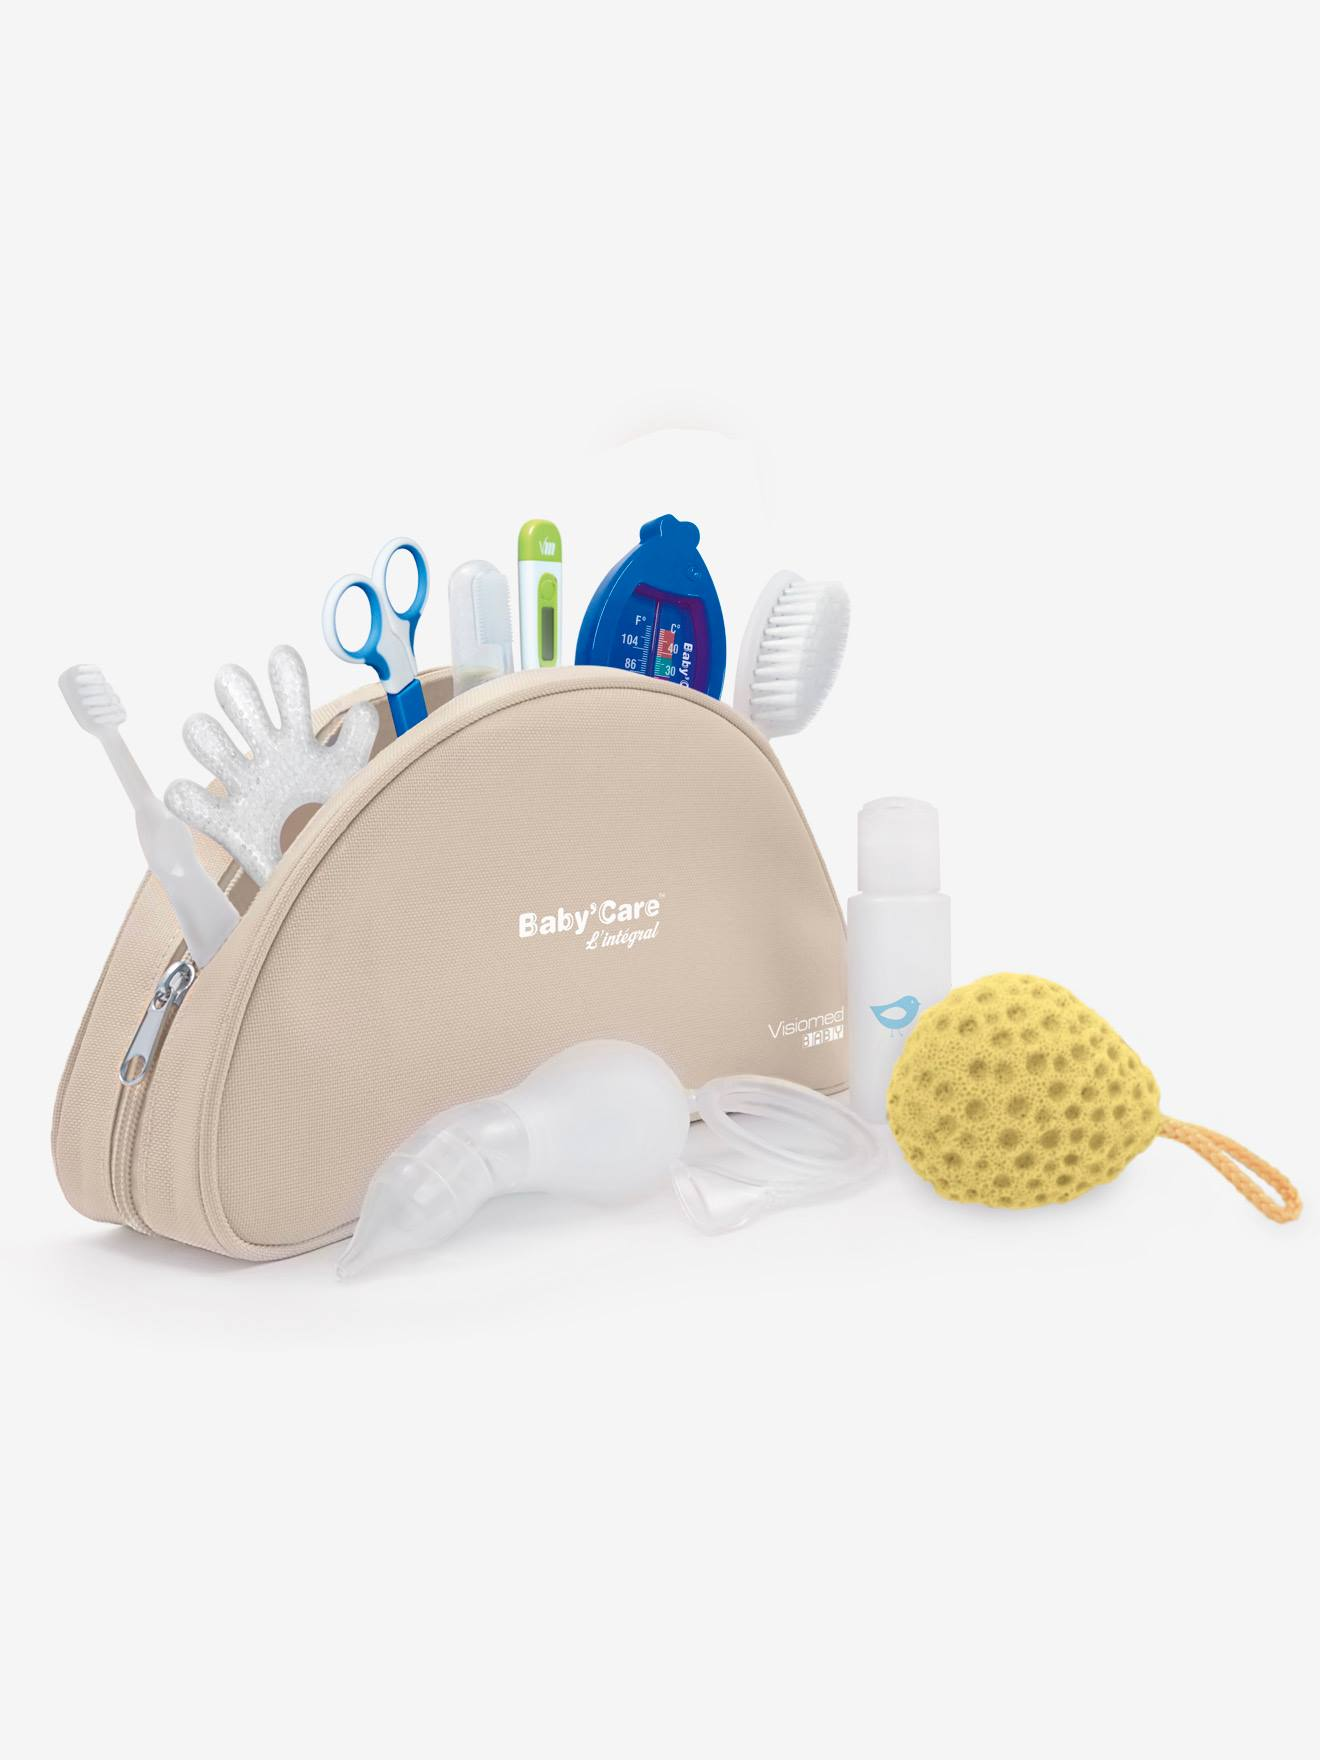 trousse de soins bebe visiomed baby baby'care l'integral